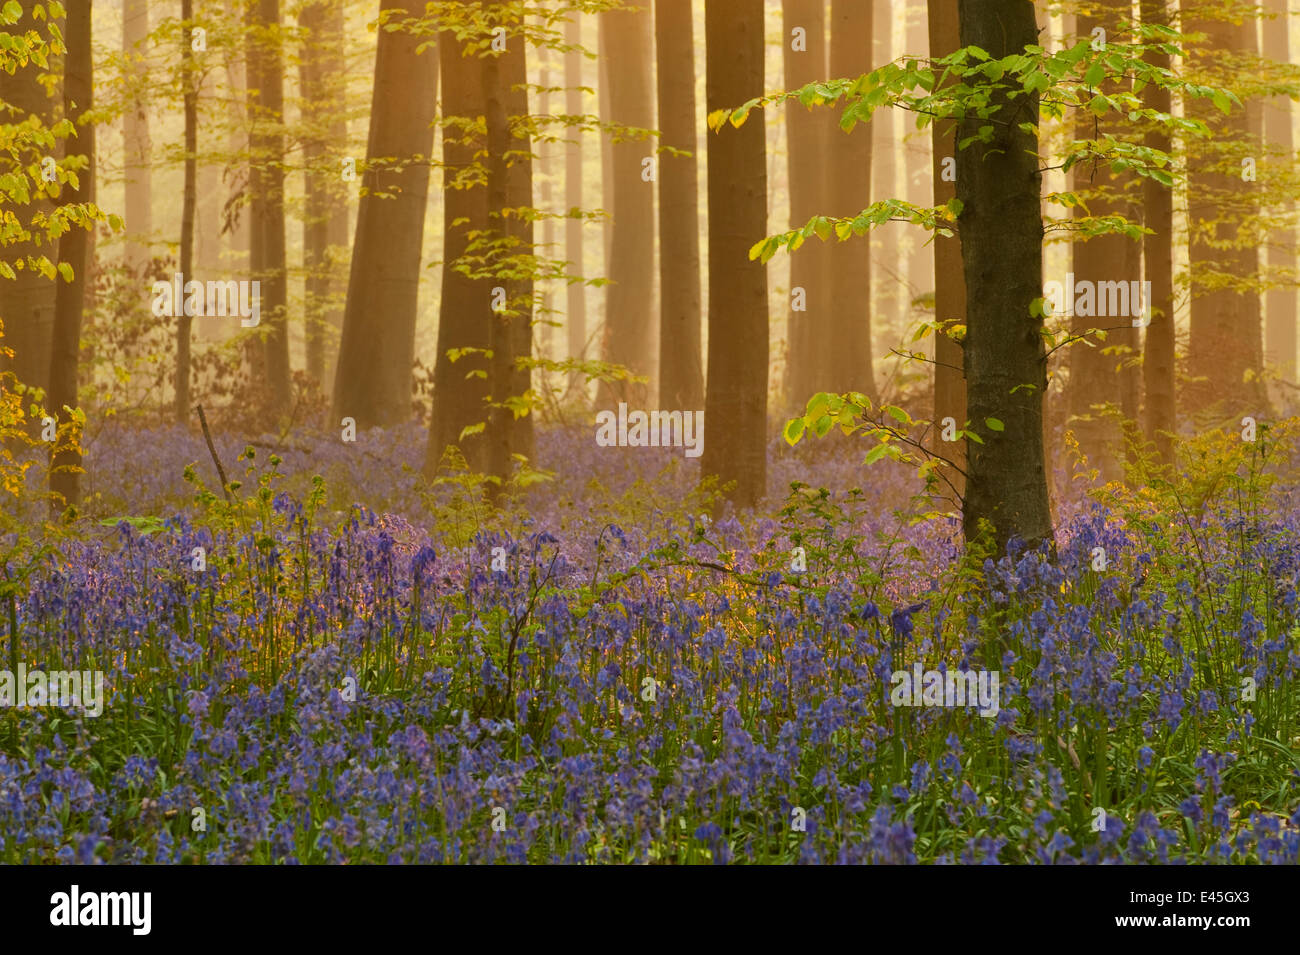 Bluebells (Hyacinthoides non-scripta / Endymion non-scriptum) flowering in wood, dawn light, in Beech wood, Hallerbos, - Stock Image